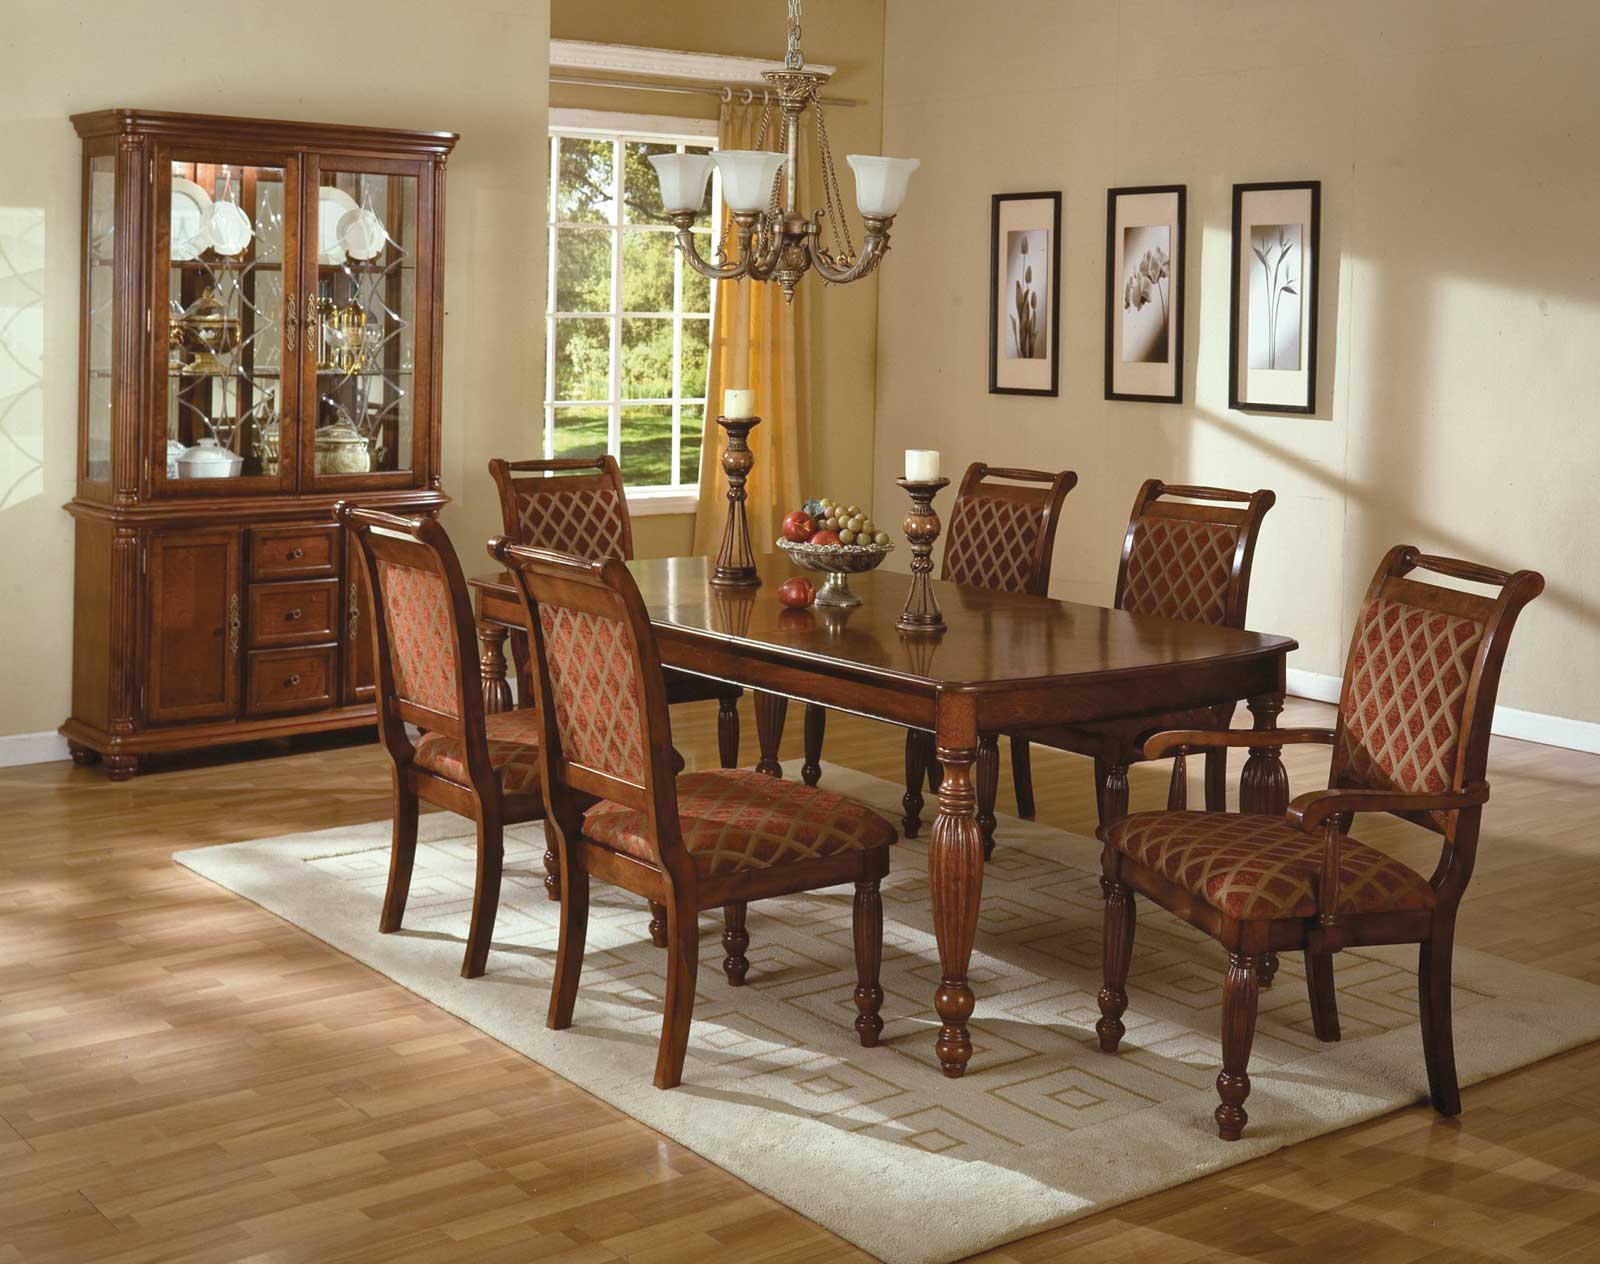 Amazing Dining Room Furniture Decoration Designs Guide